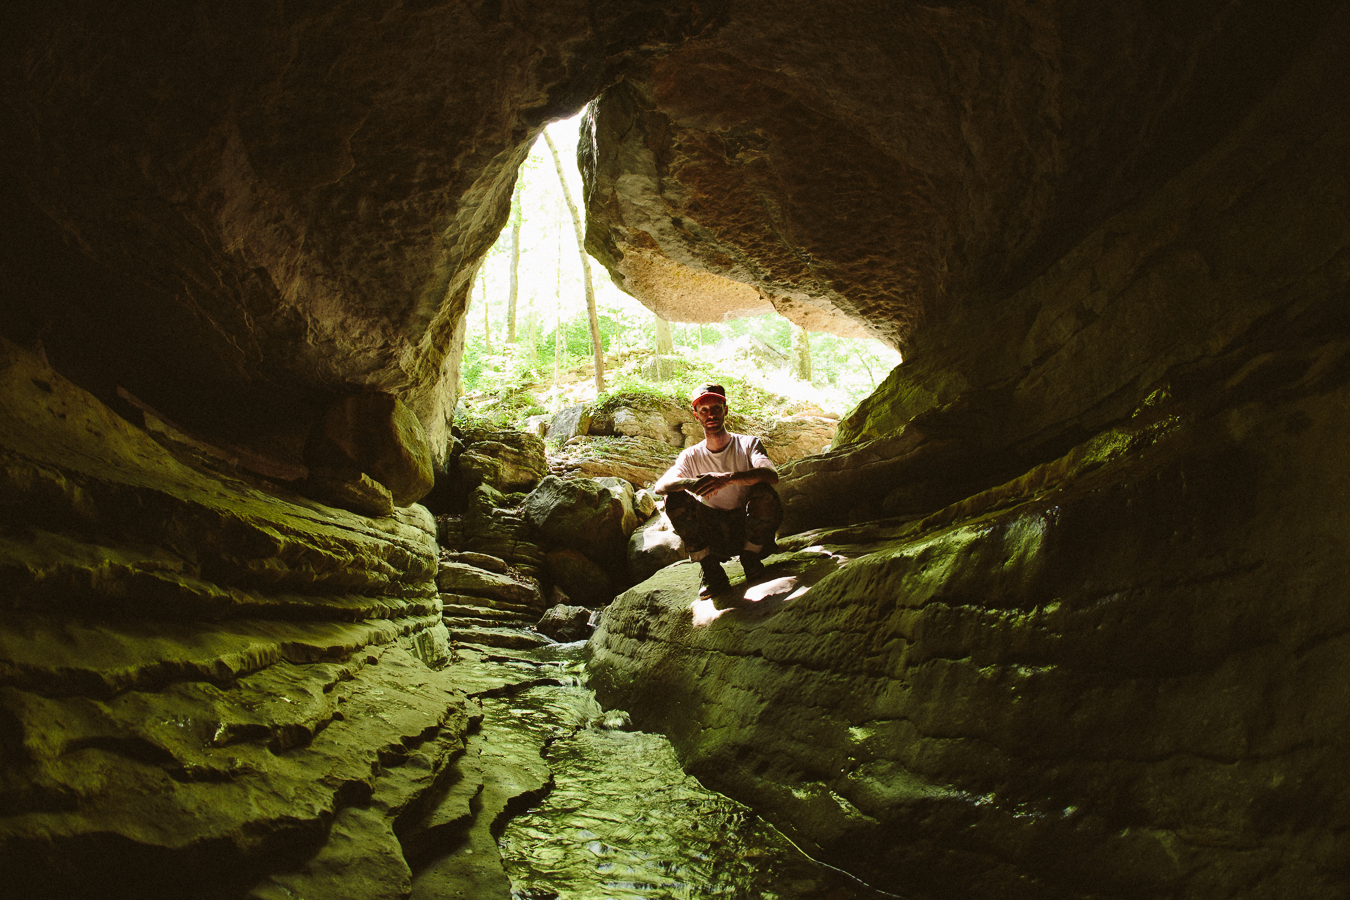 This cool little cave got me warmed up for the main spot further alongthe creek.